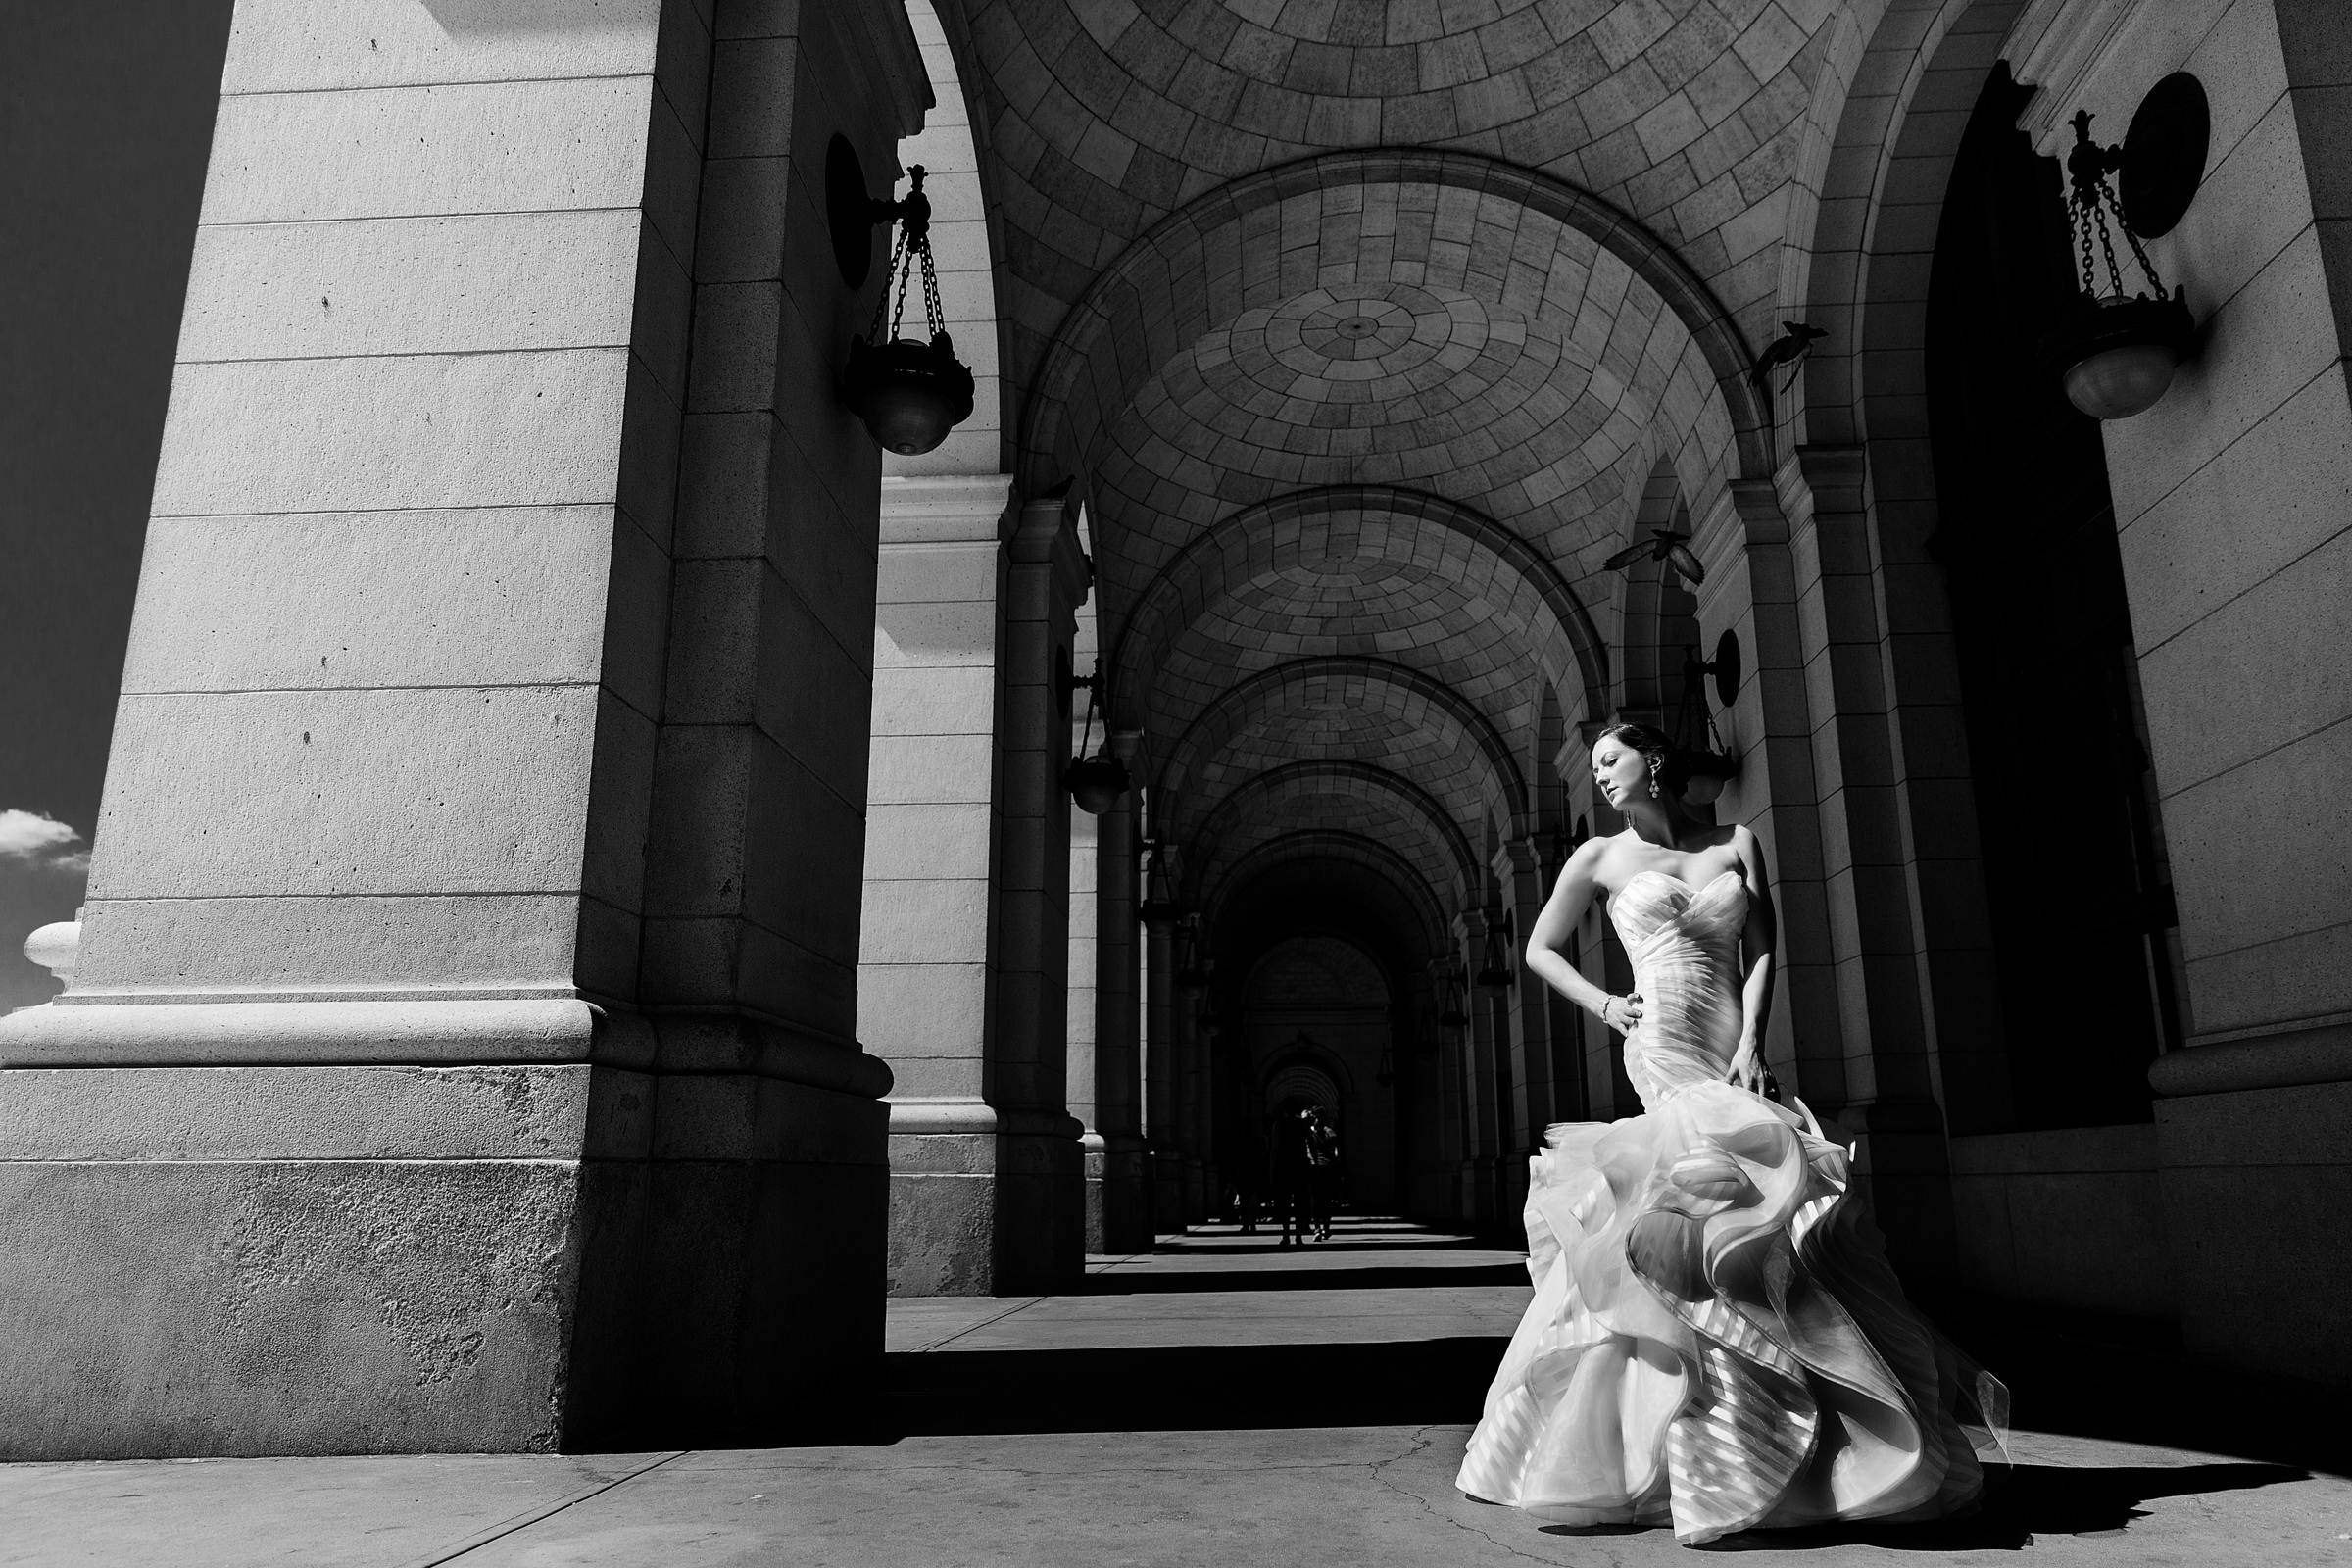 Bride portrait in dramatic vaulted architecture - photo by Procopio Photography